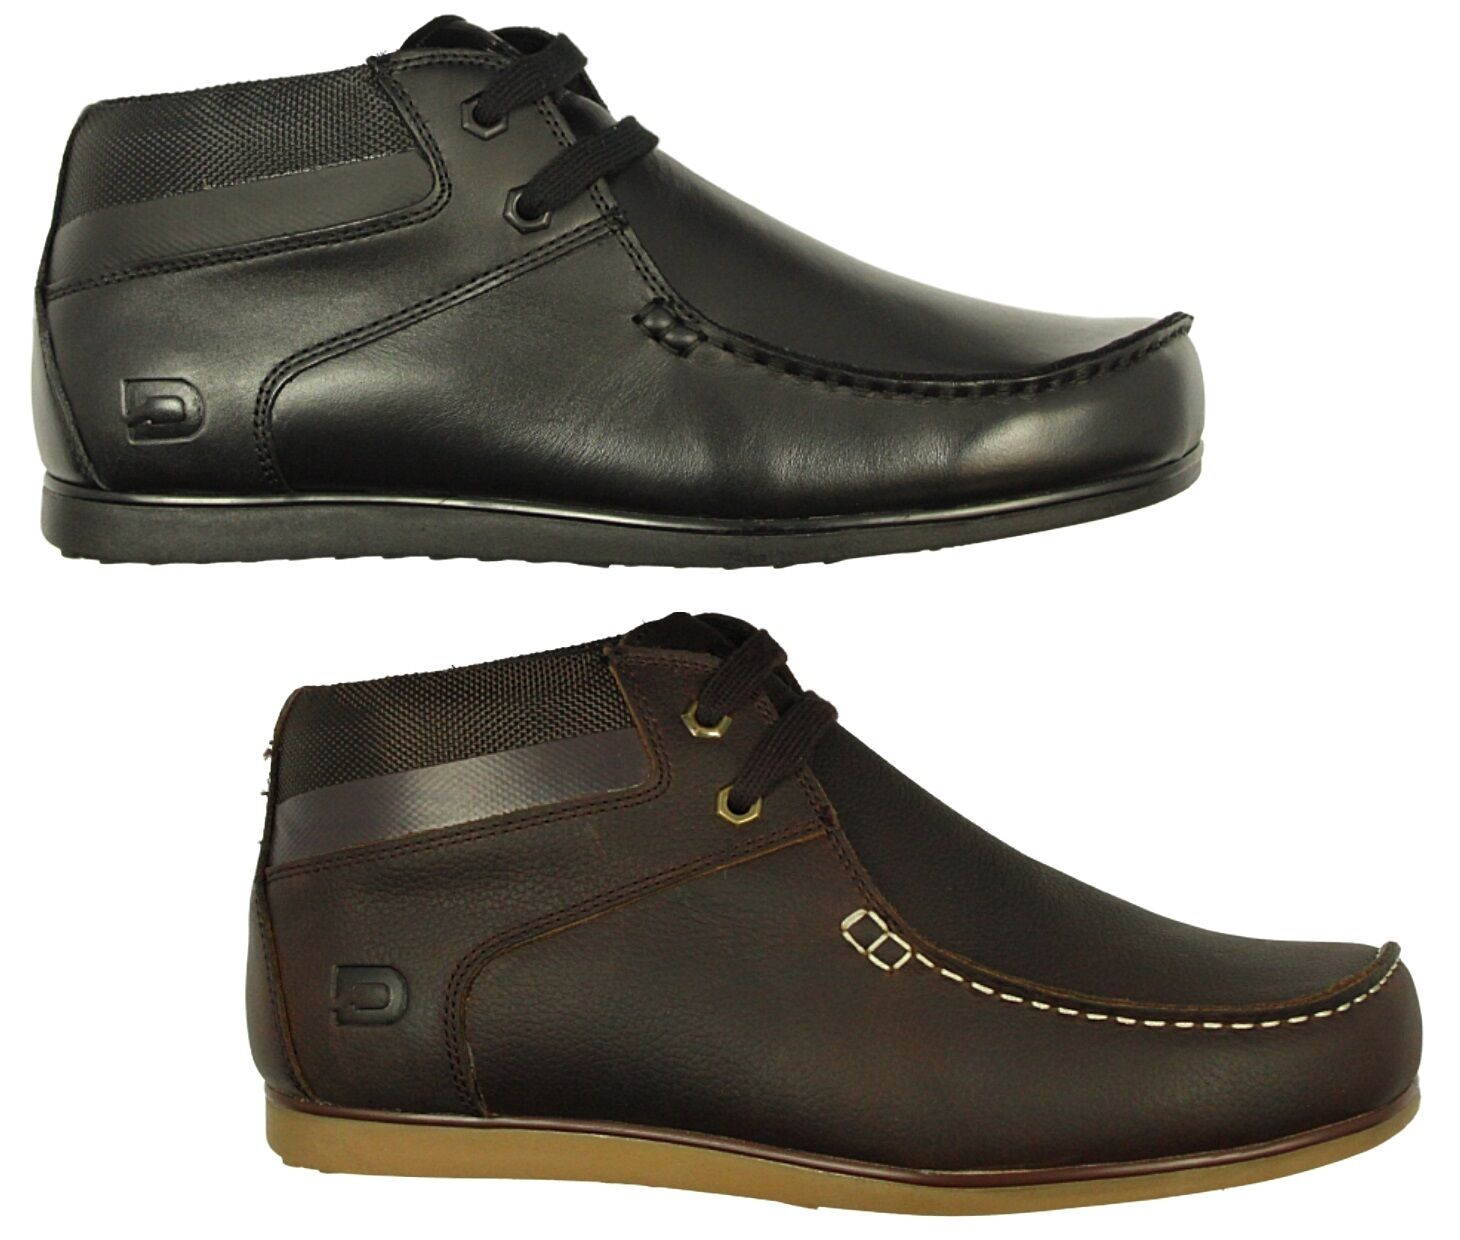 MENS NICHOLAS DEAKINS SHOES OFFENDER-2 SMART BLACK BROWN DESIGNER BOOTS 6-12